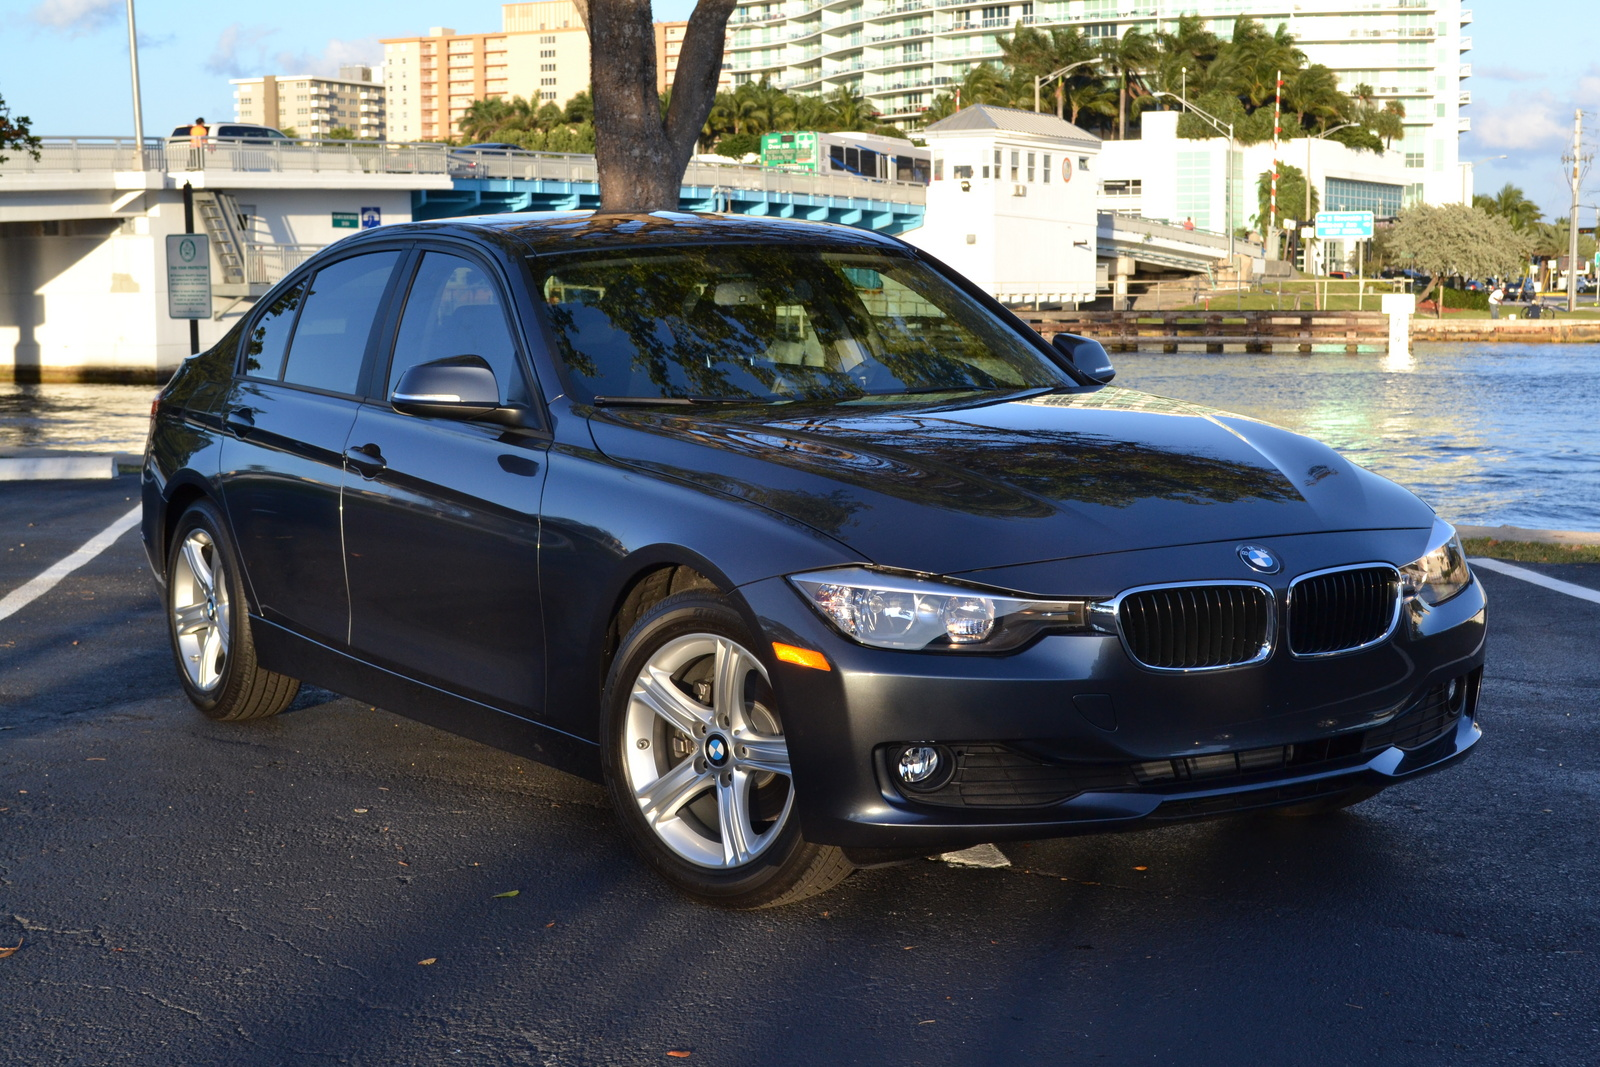 New 2015 Bmw X1 For Sale Cargurus Sexy Girl And Car Photos